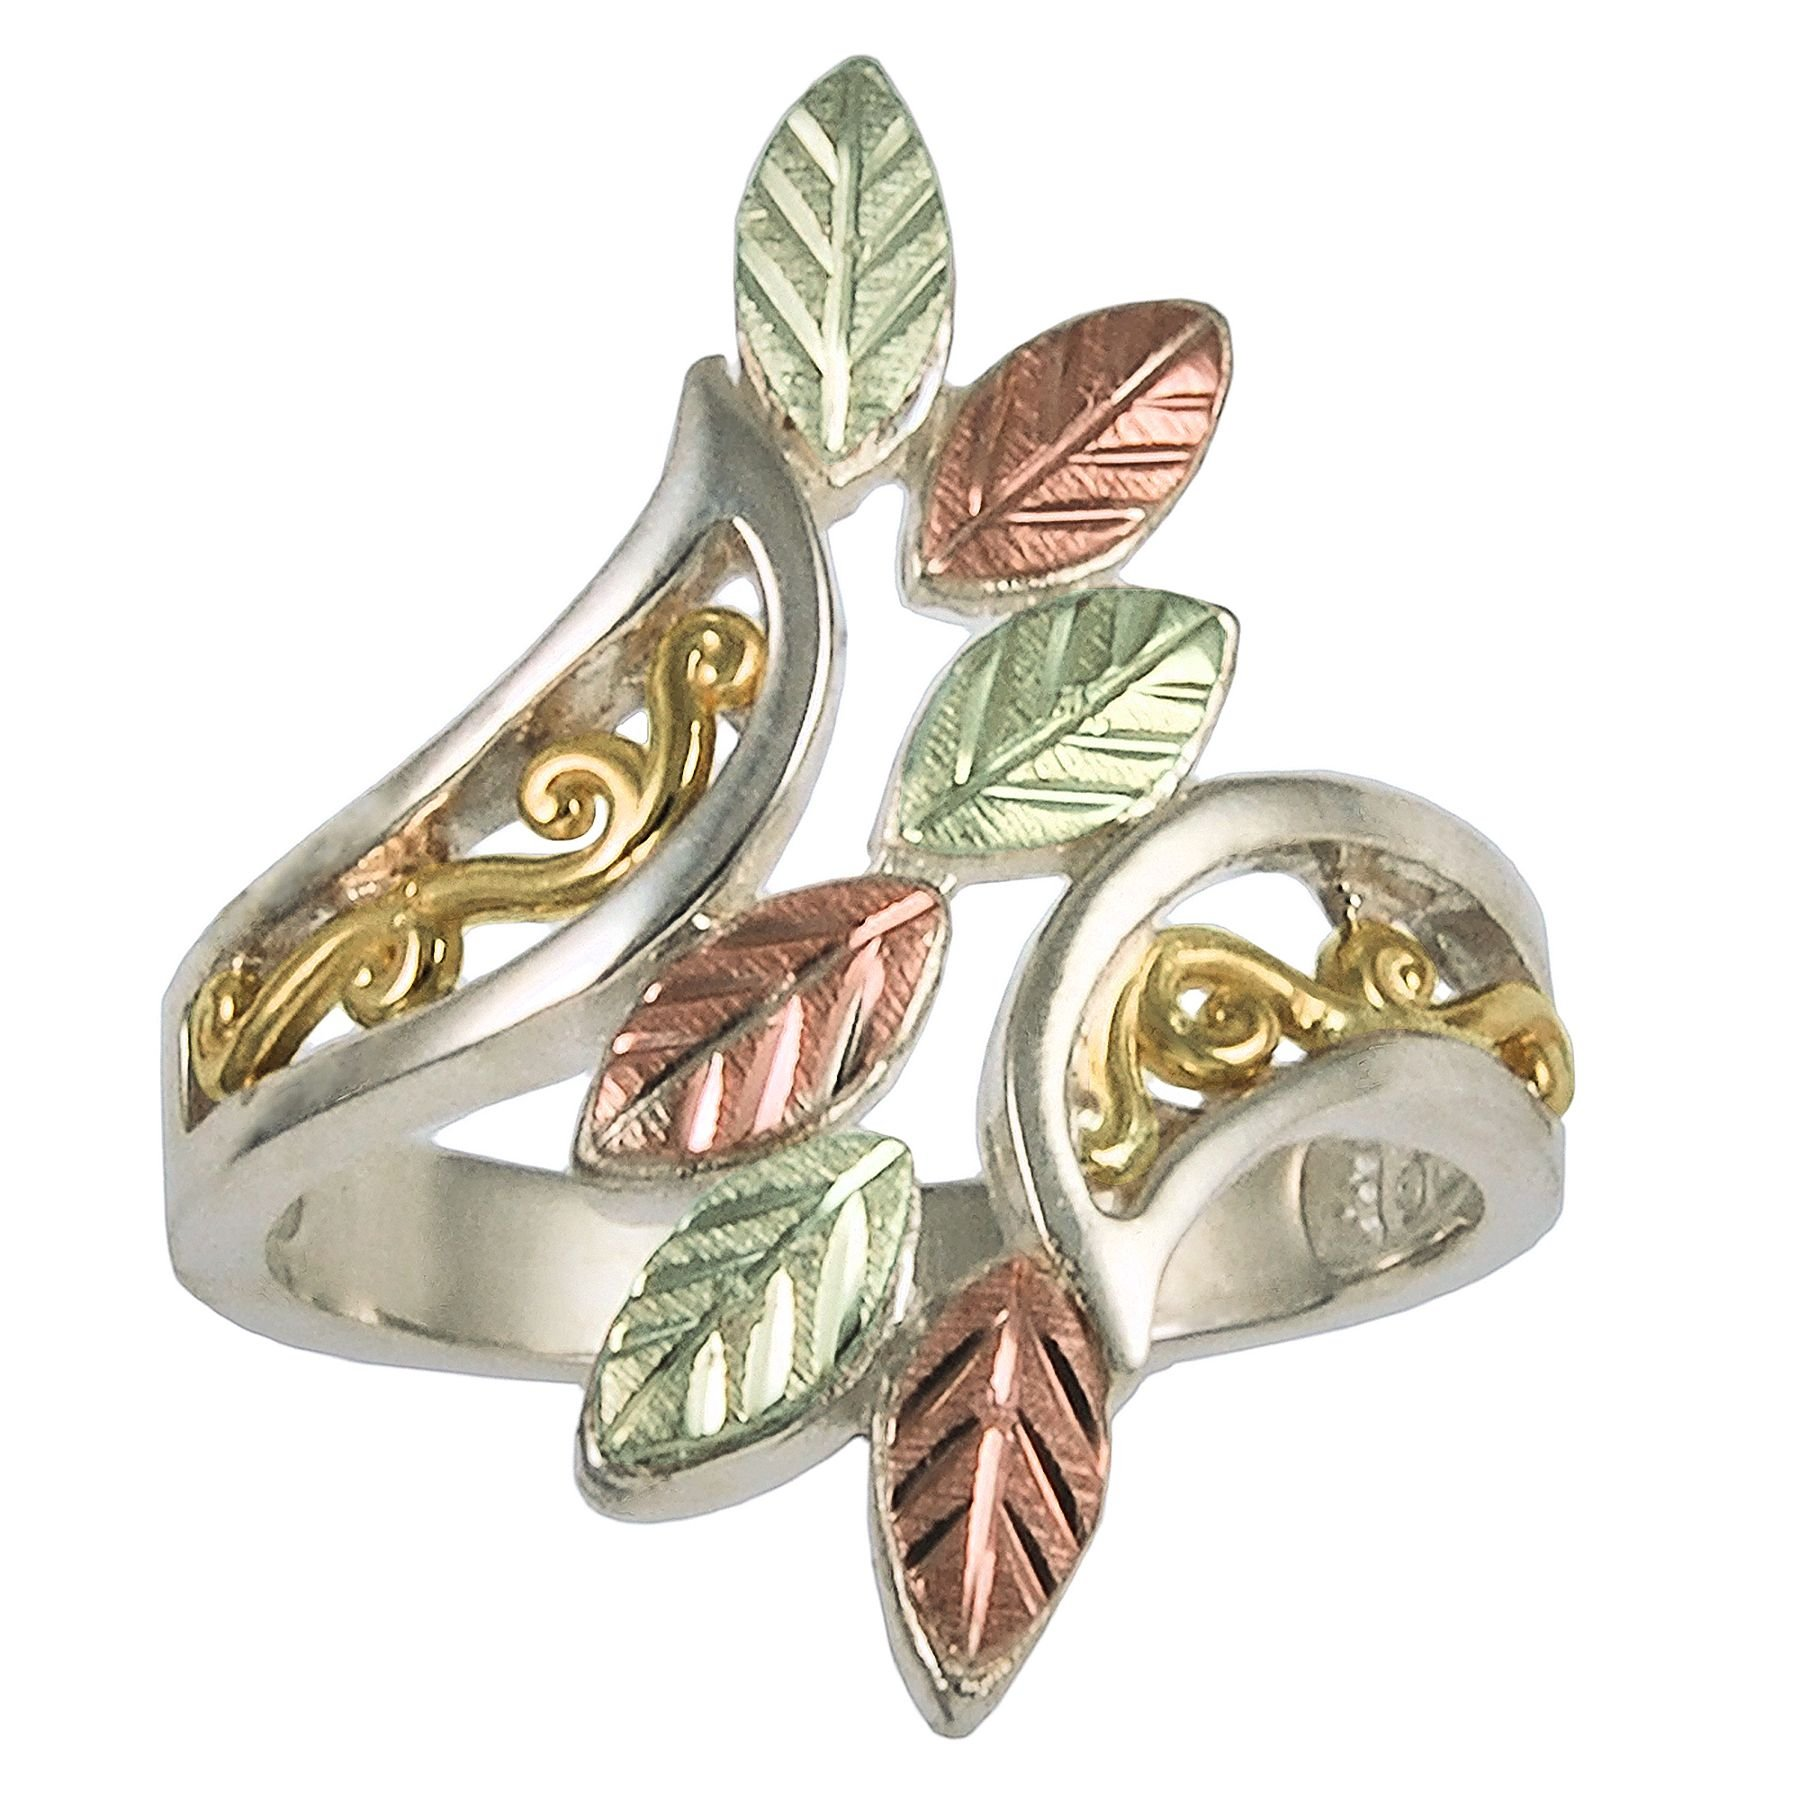 Sterling Silver Black Hills Ladies Ring with 10k Gold Accents and 12k Leaves